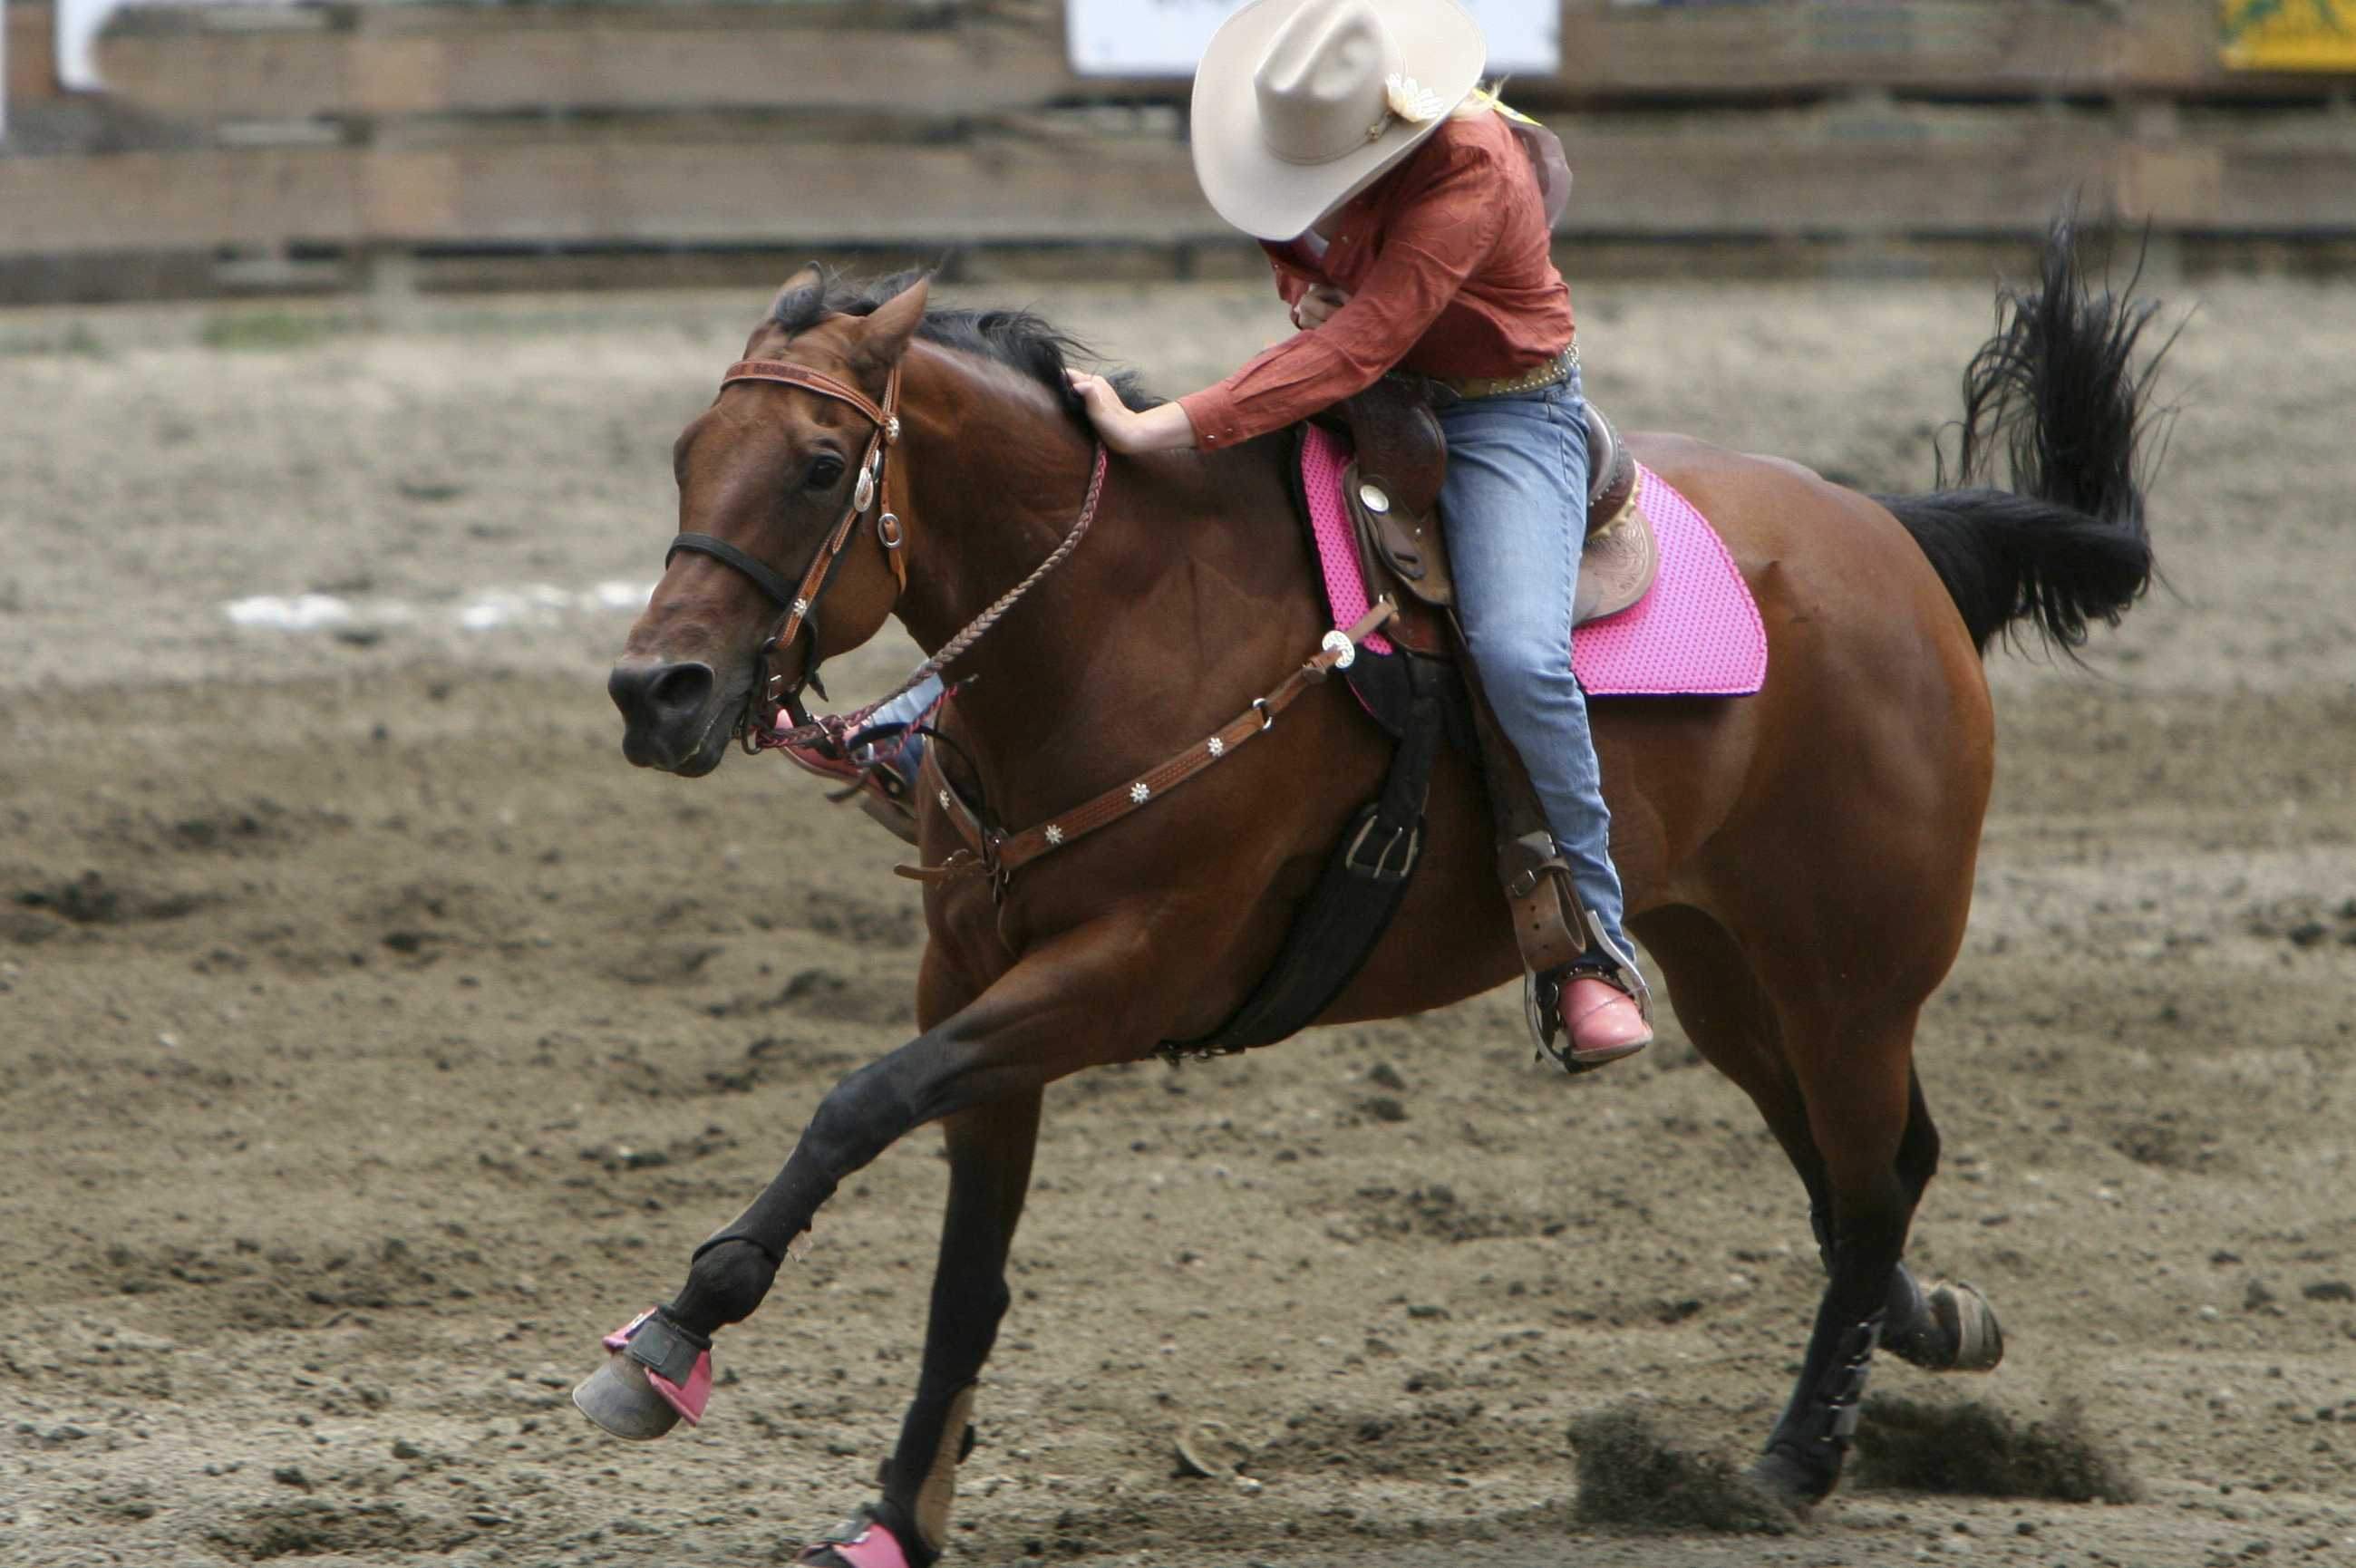 Living with Cancer: A Cowgirl's Inspiring Journey